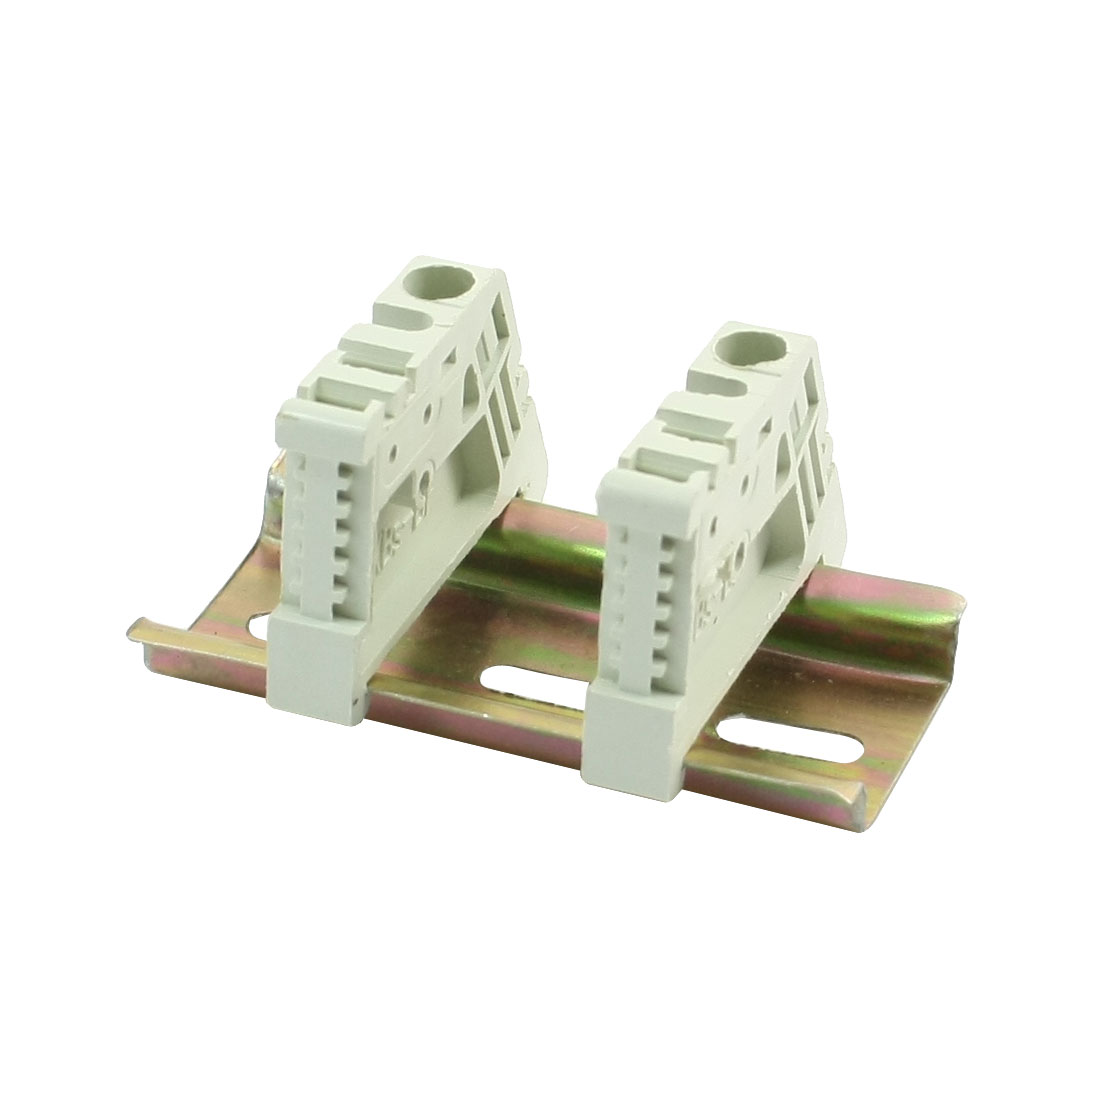 1 Set 60mmx35mm Slotted Metal DIN Rail w Terminal Block End Stoppers